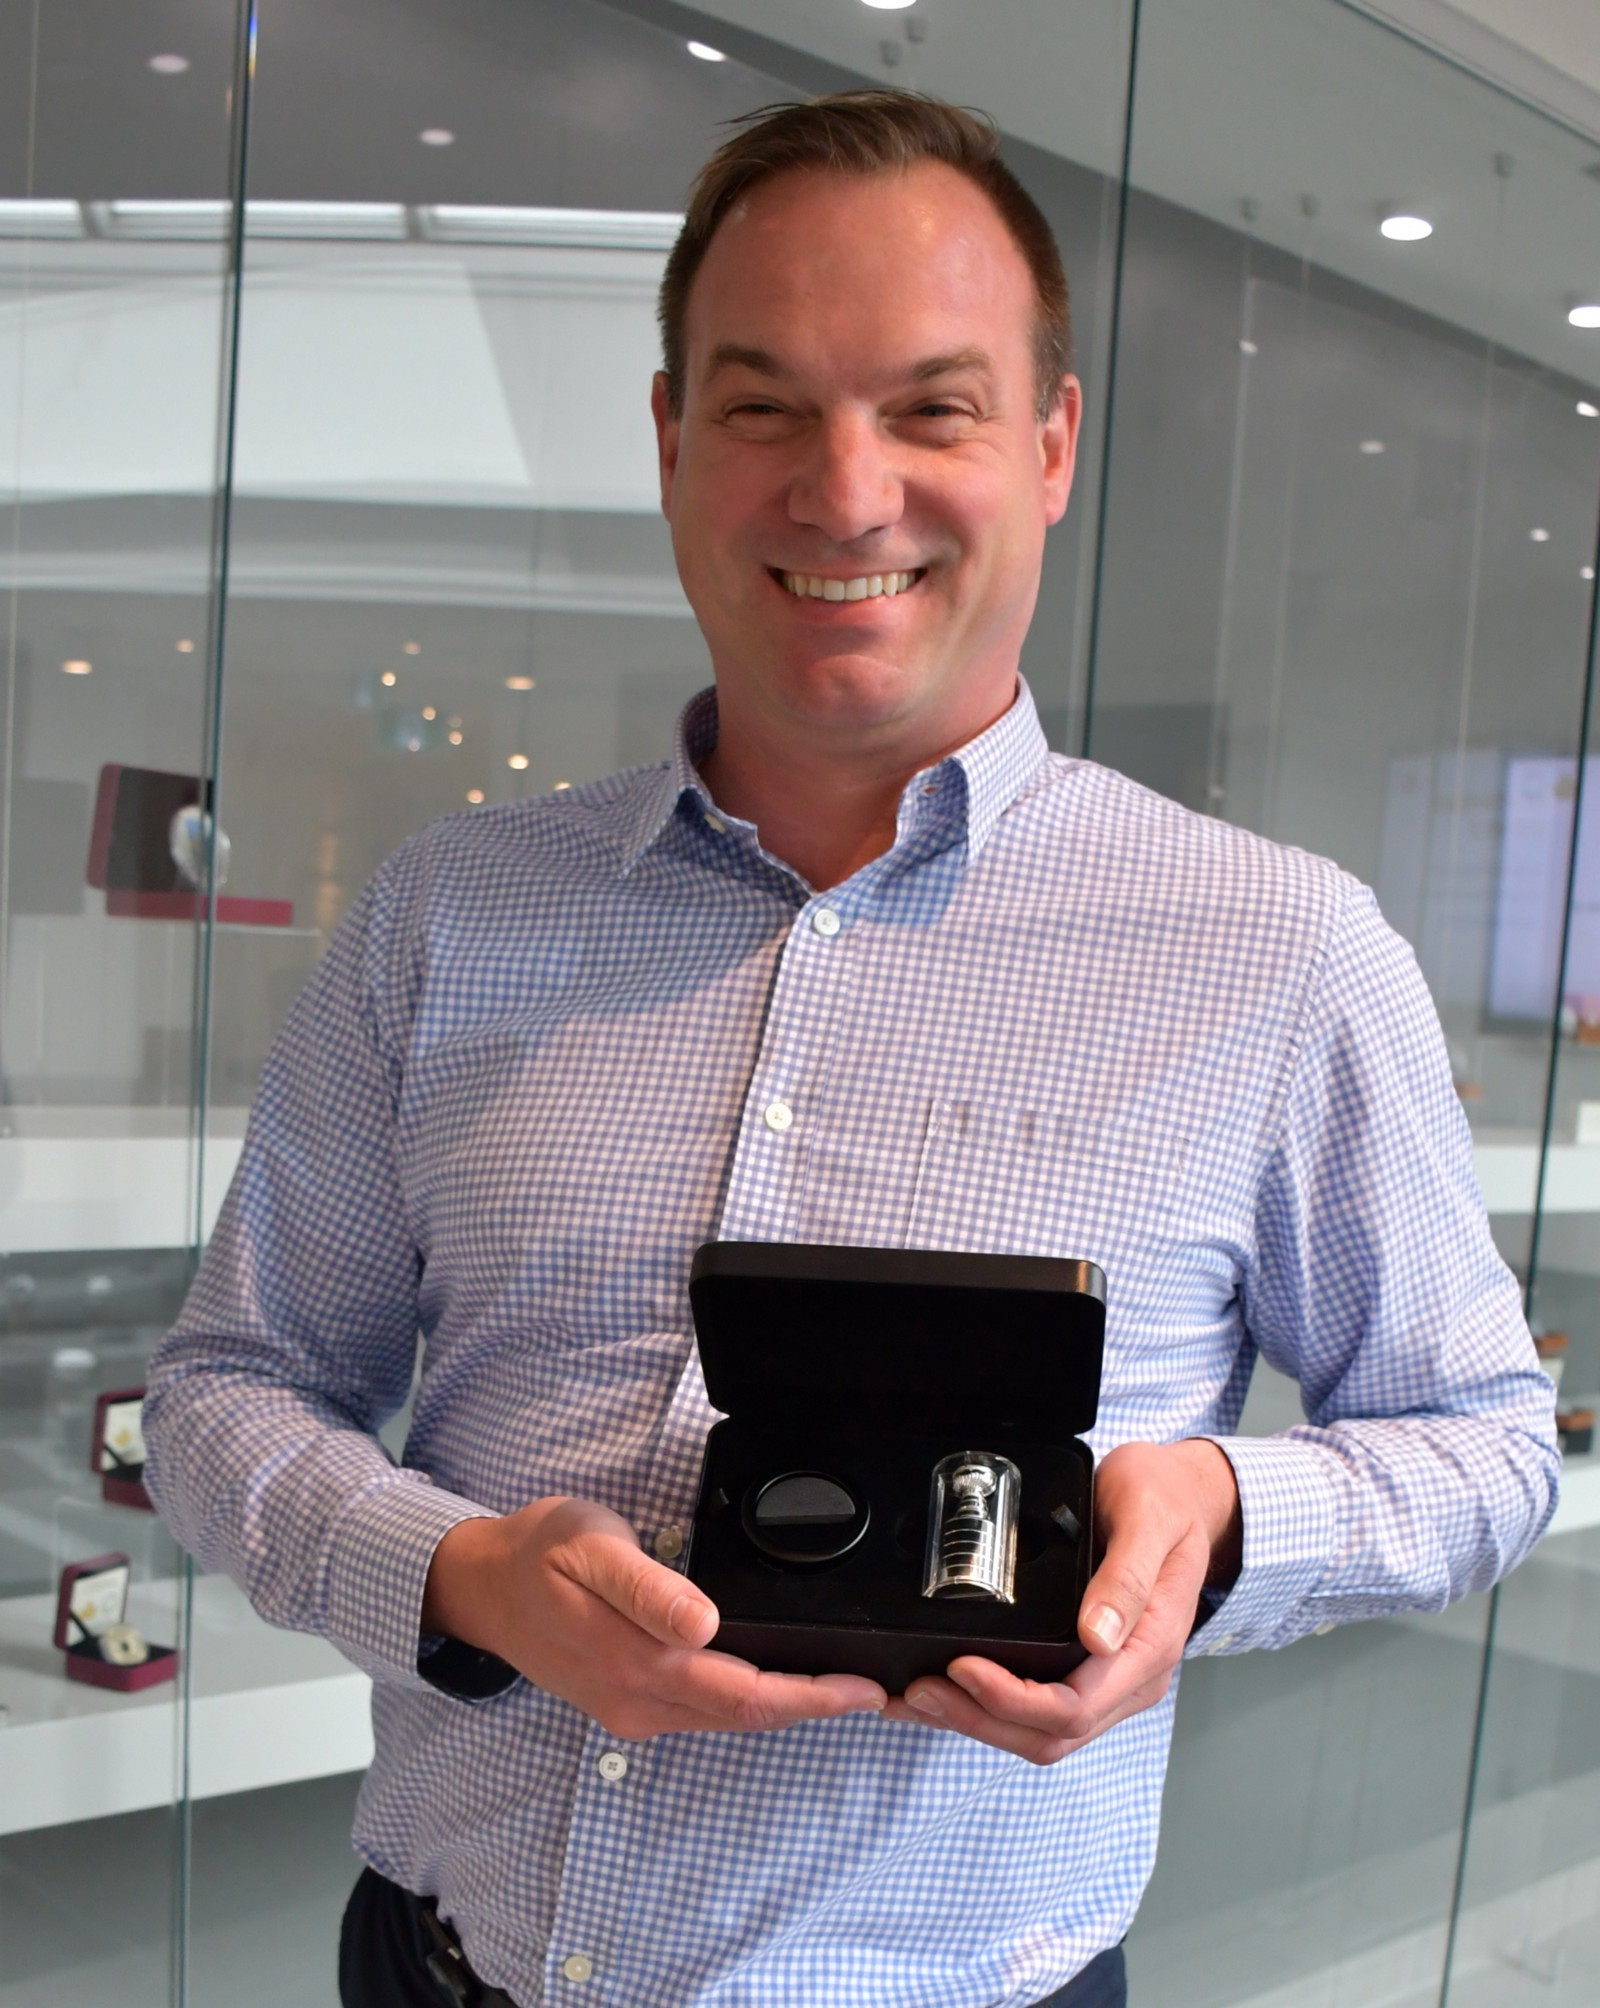 Michael Groves, director of development and applied technology of the Royal Canadian Mint, holds the 2018 Stanley Cup curved coin